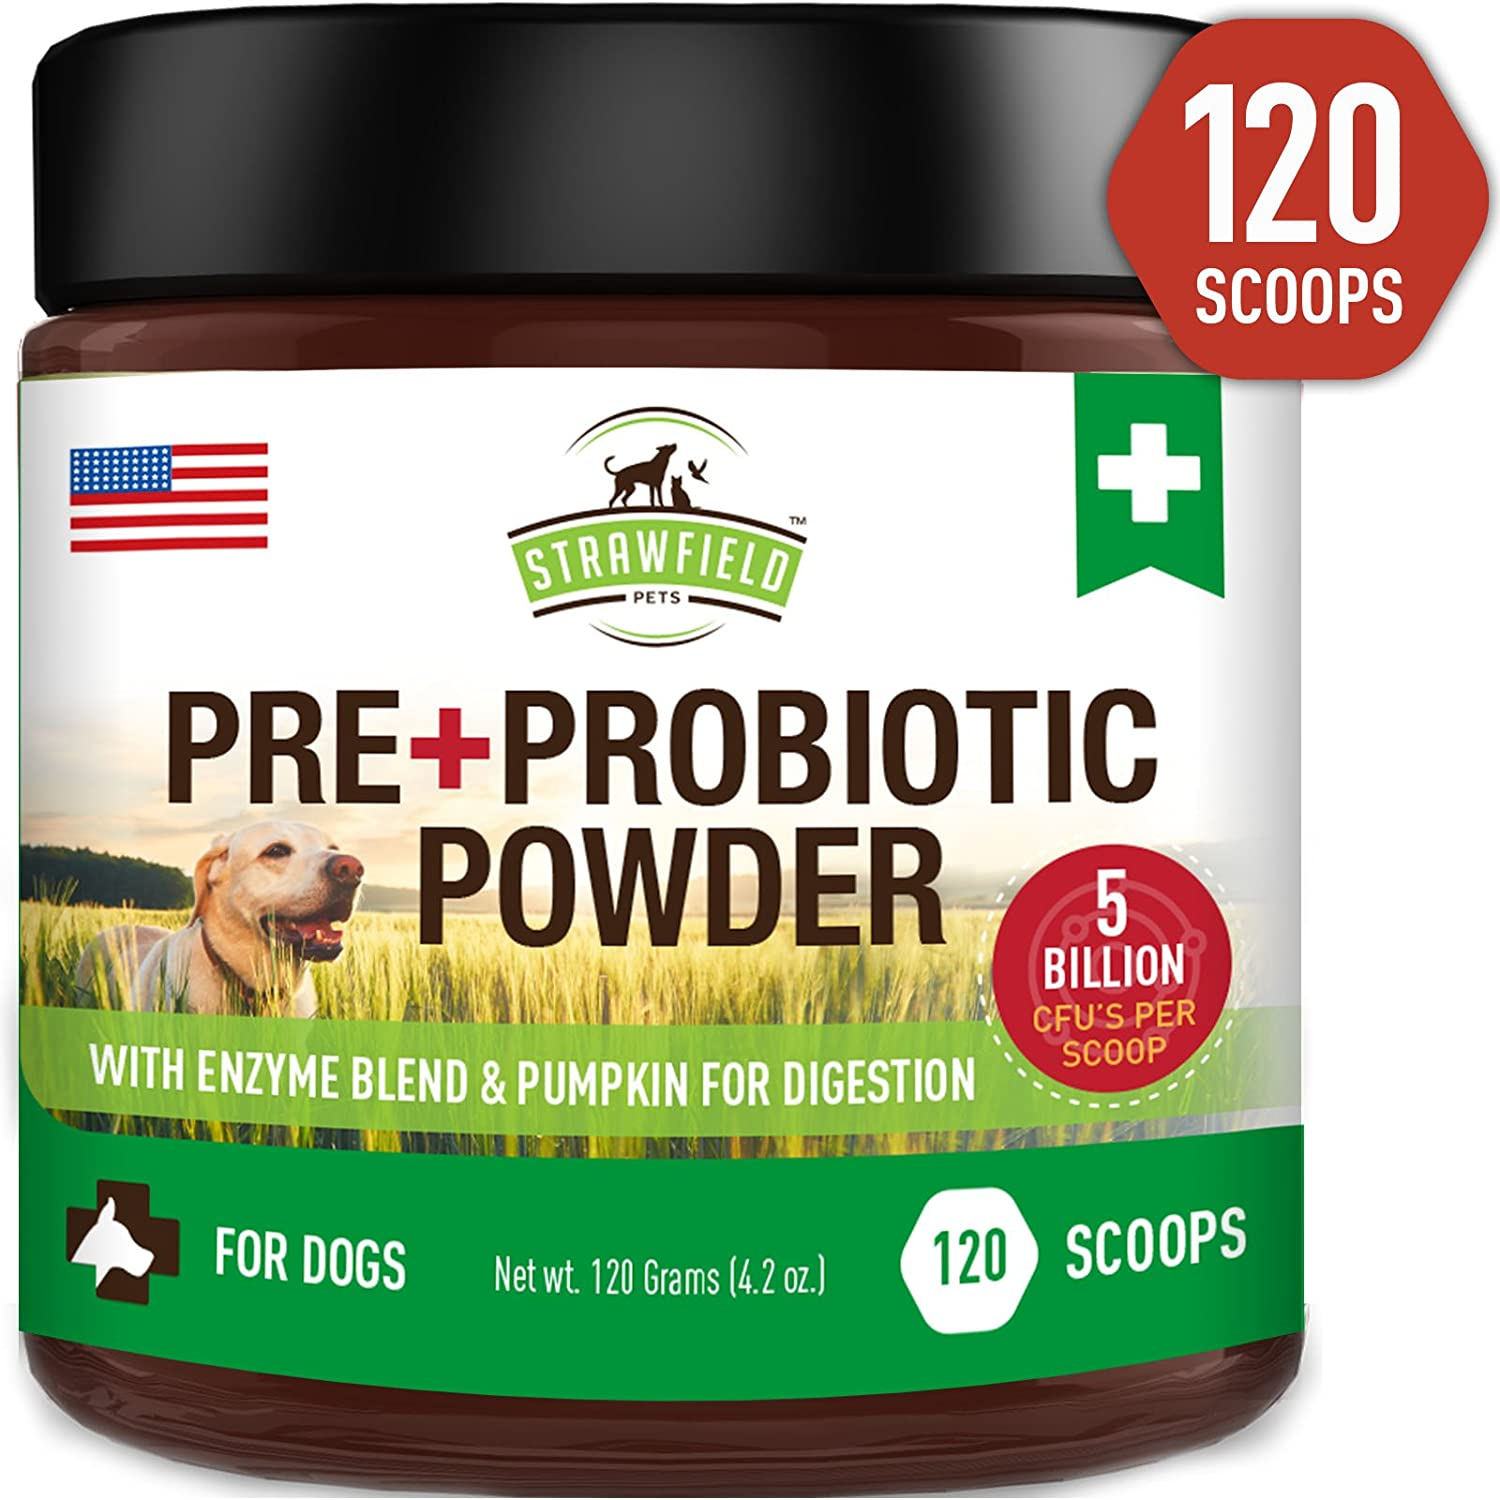 Probiotics for Dogs Digestive Enzymes, Prebiotics, Pumpkin – 120 Grams 5 Billion CFU – Dog Probiotic Powder Supplement for Pet Allergy Relief, Constipation Immune Support Diarrhea Upset Stomach, USA